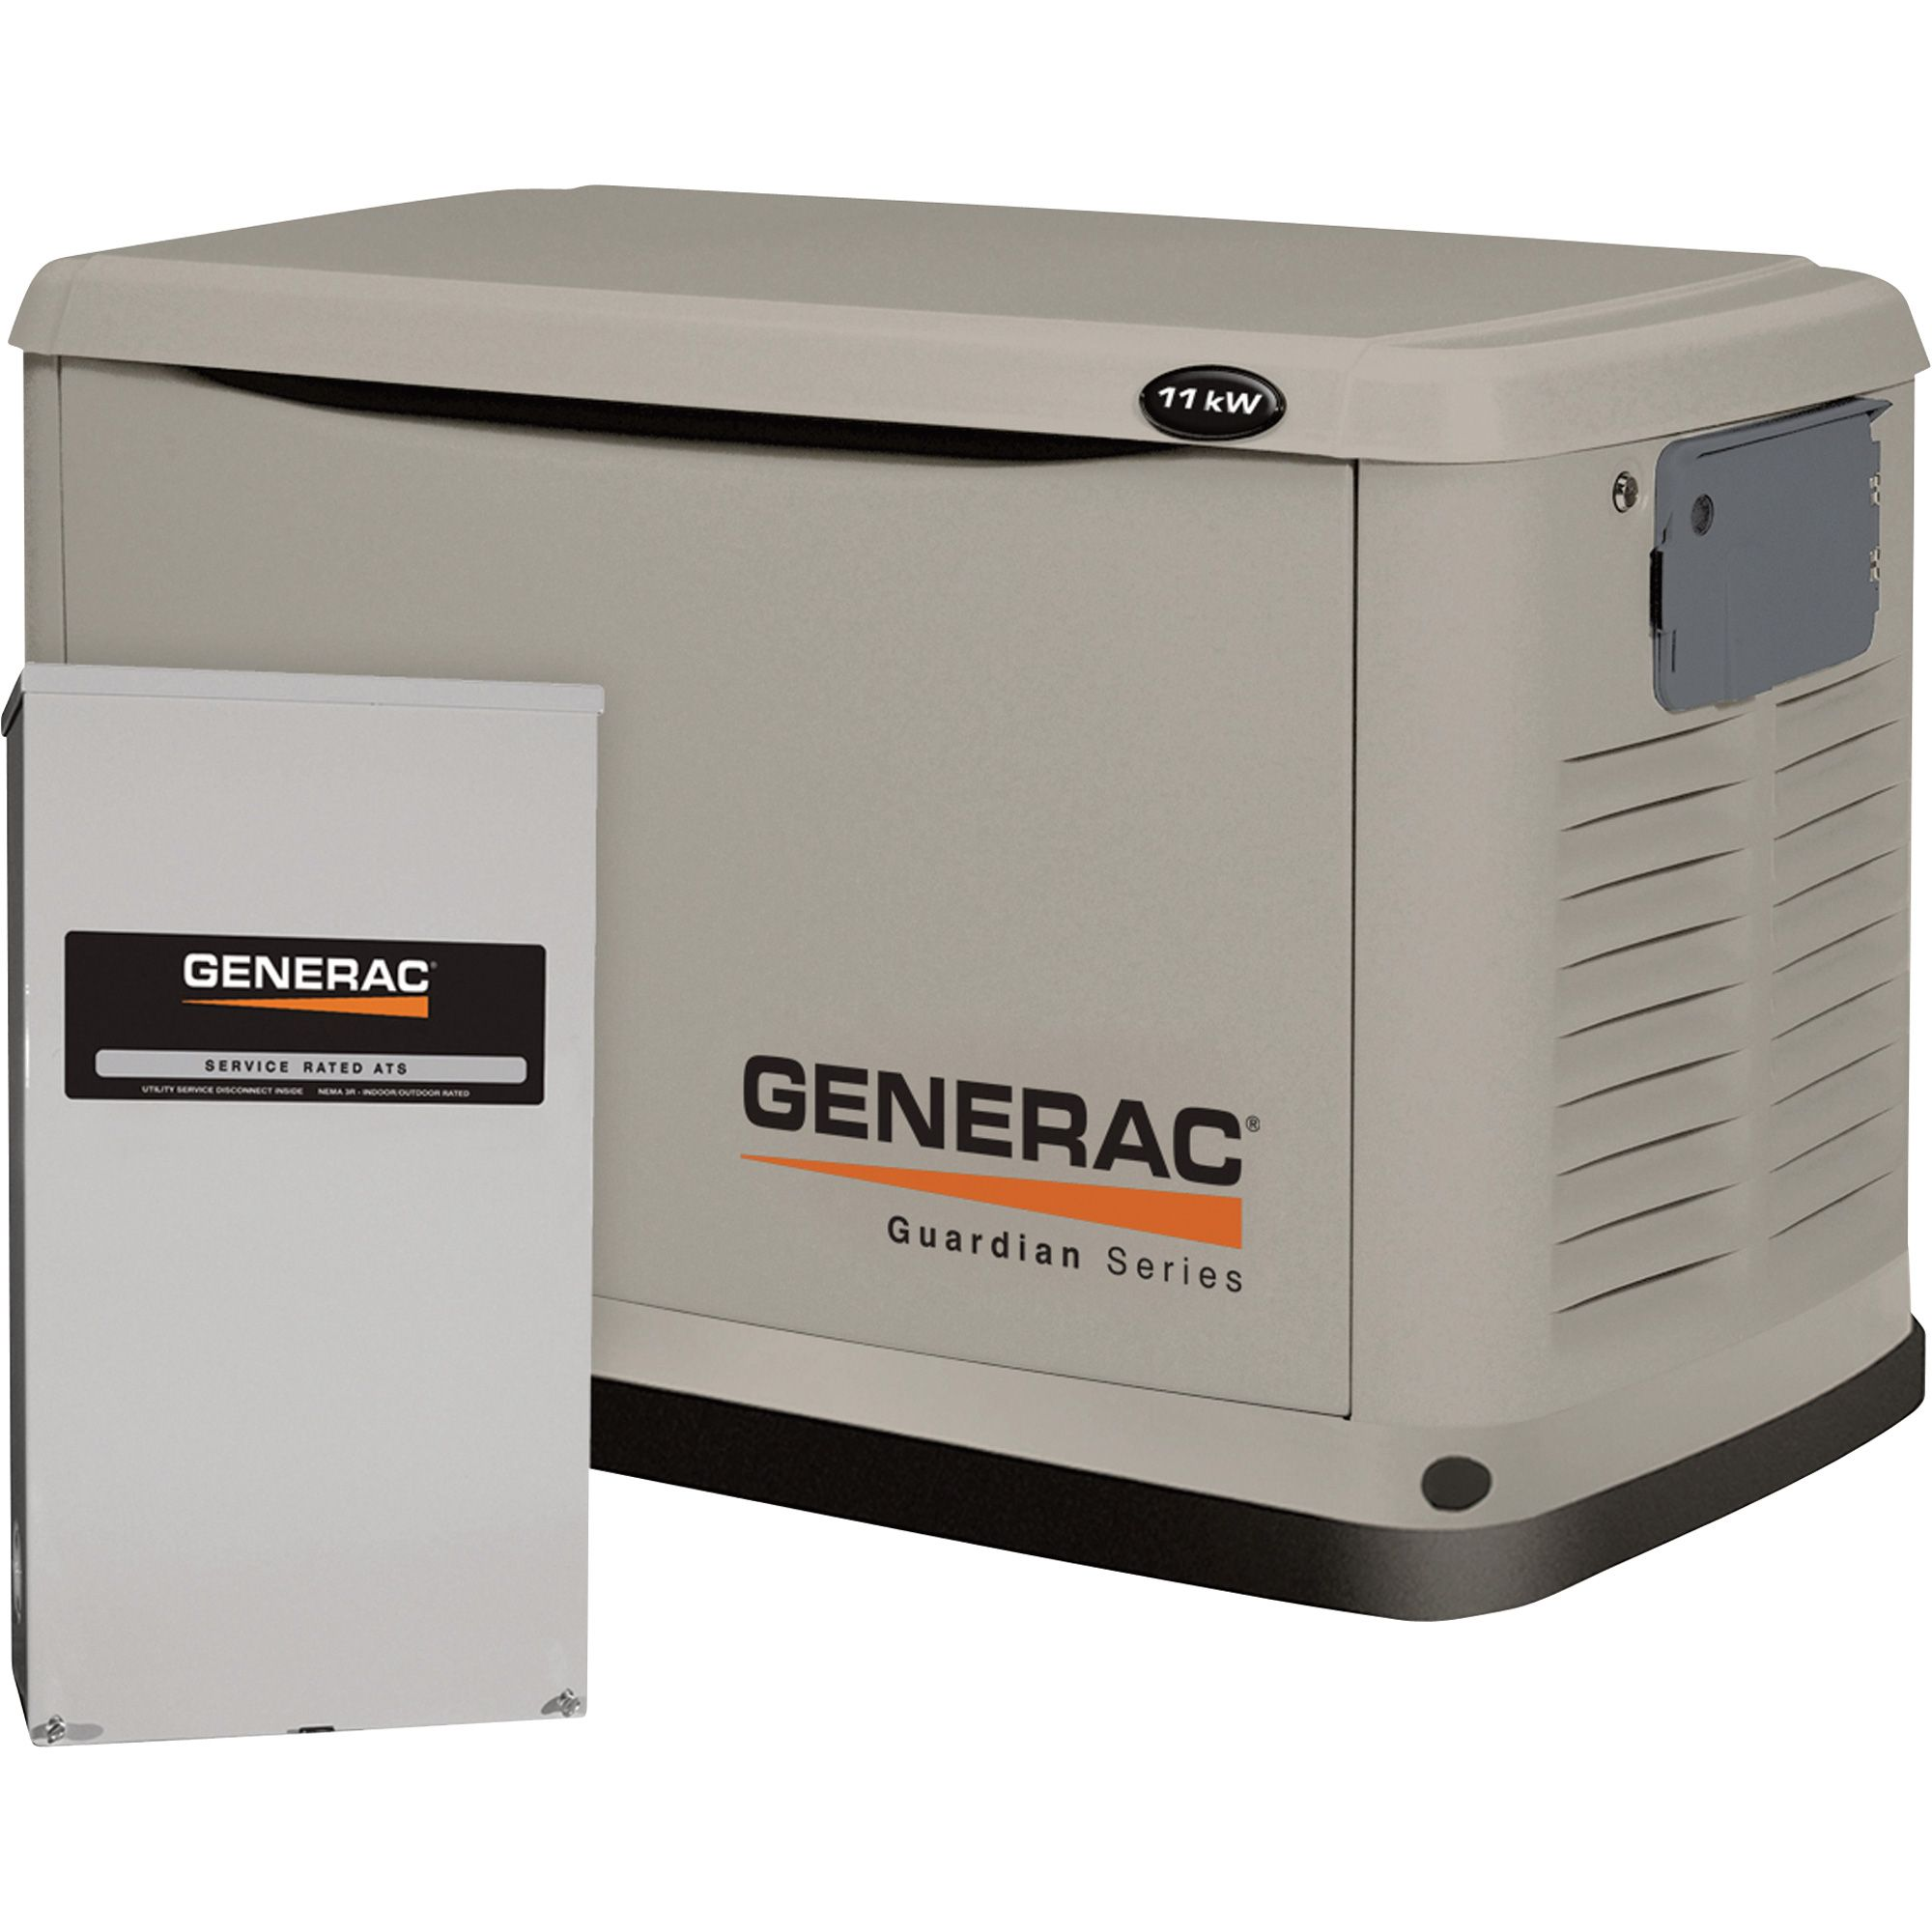 medium resolution of free shipping generac guardian air cooled standby generator 11kw lp 10kw ng 200 amp service rated smart switch model 6438 residential standby